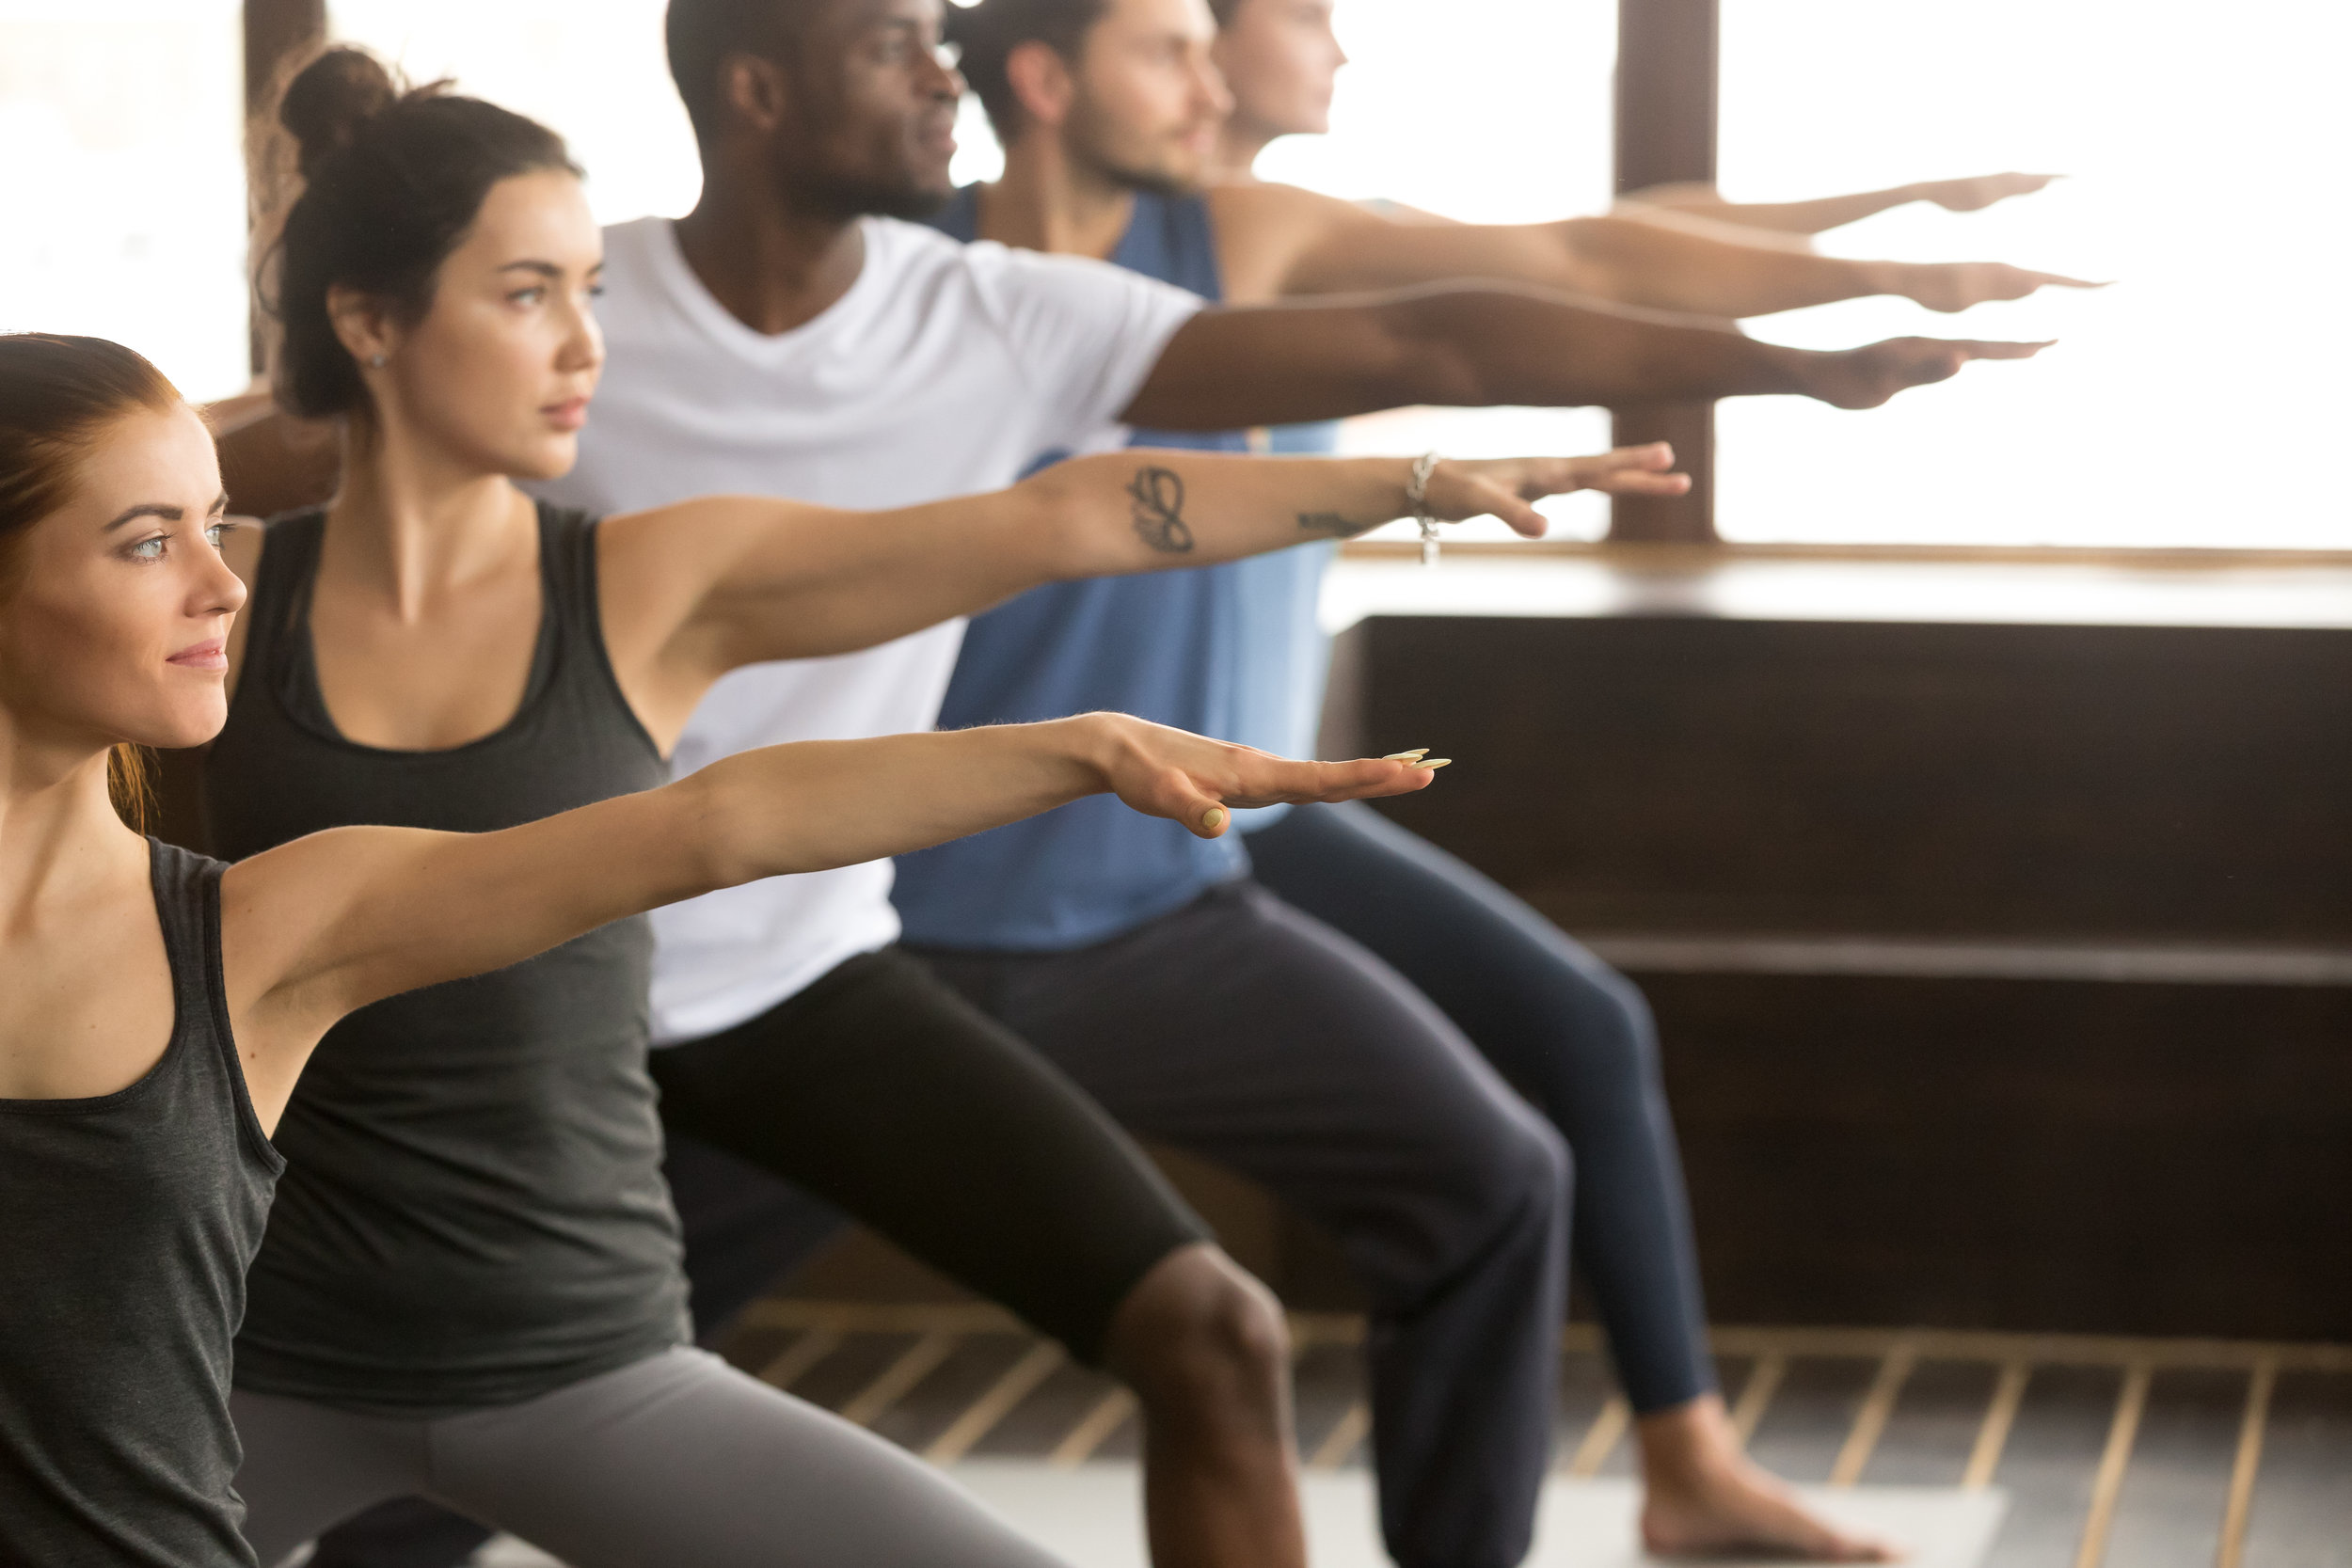 YOGA INSTRUCTOR TRAINING - CERTIFICATION STARTING THIS JANUARY